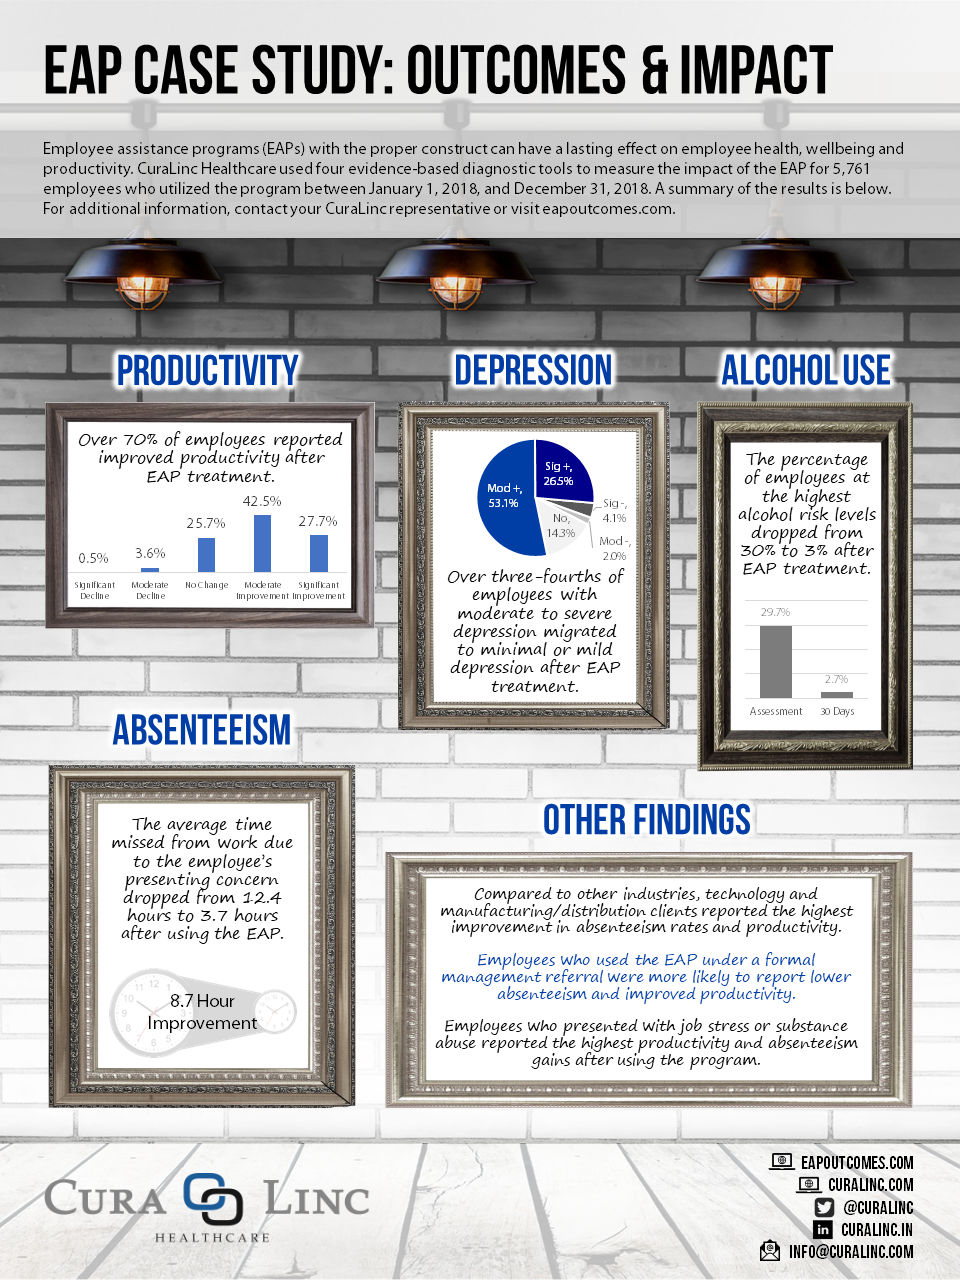 image of CuraLinc's annual case study, 'Outcomes and Impact'.